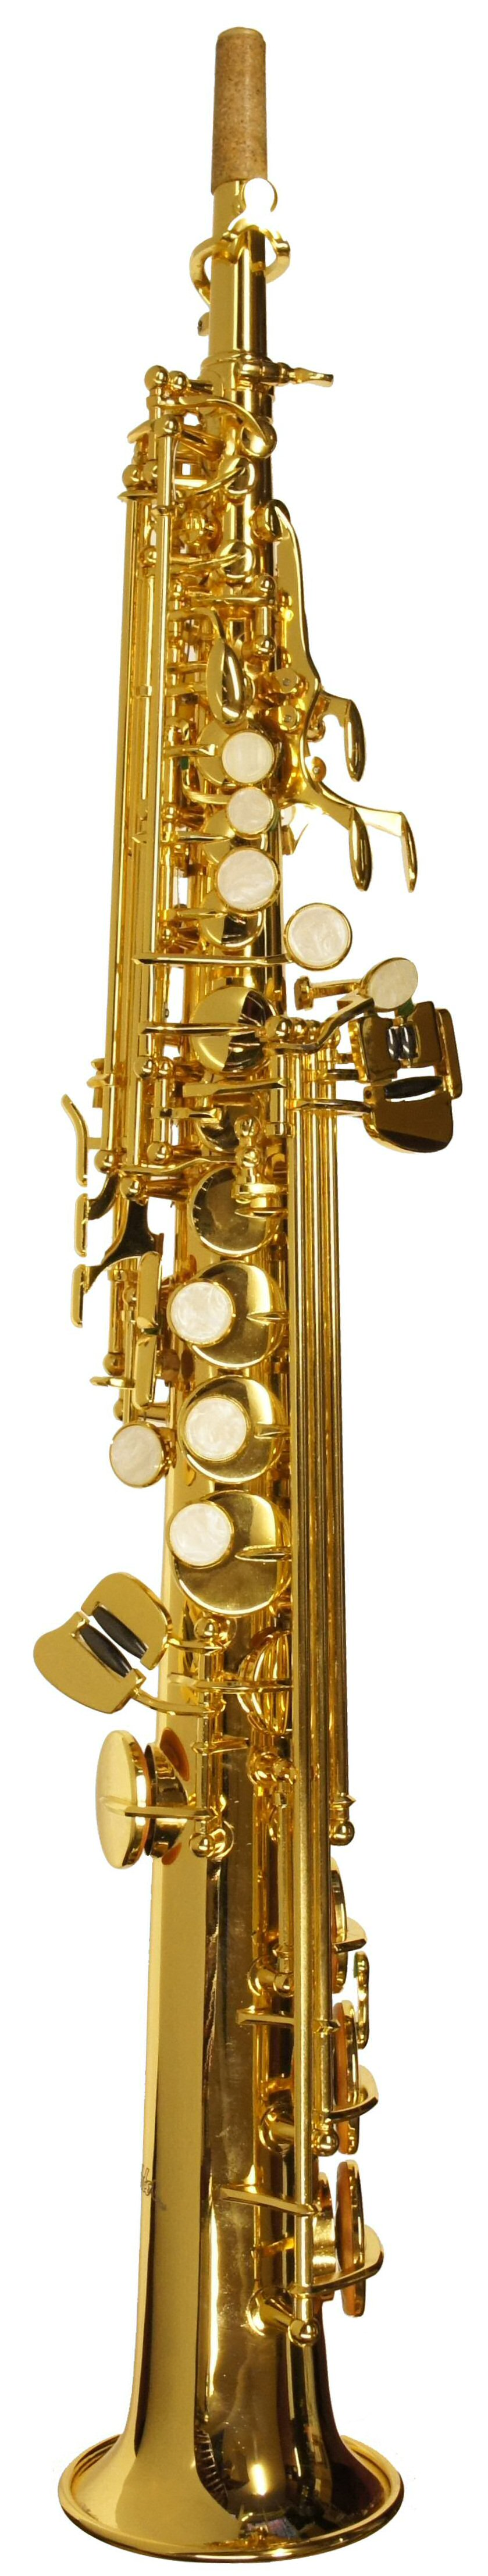 New Old Stock Fighter Gold plated Soprano Sax with high G key